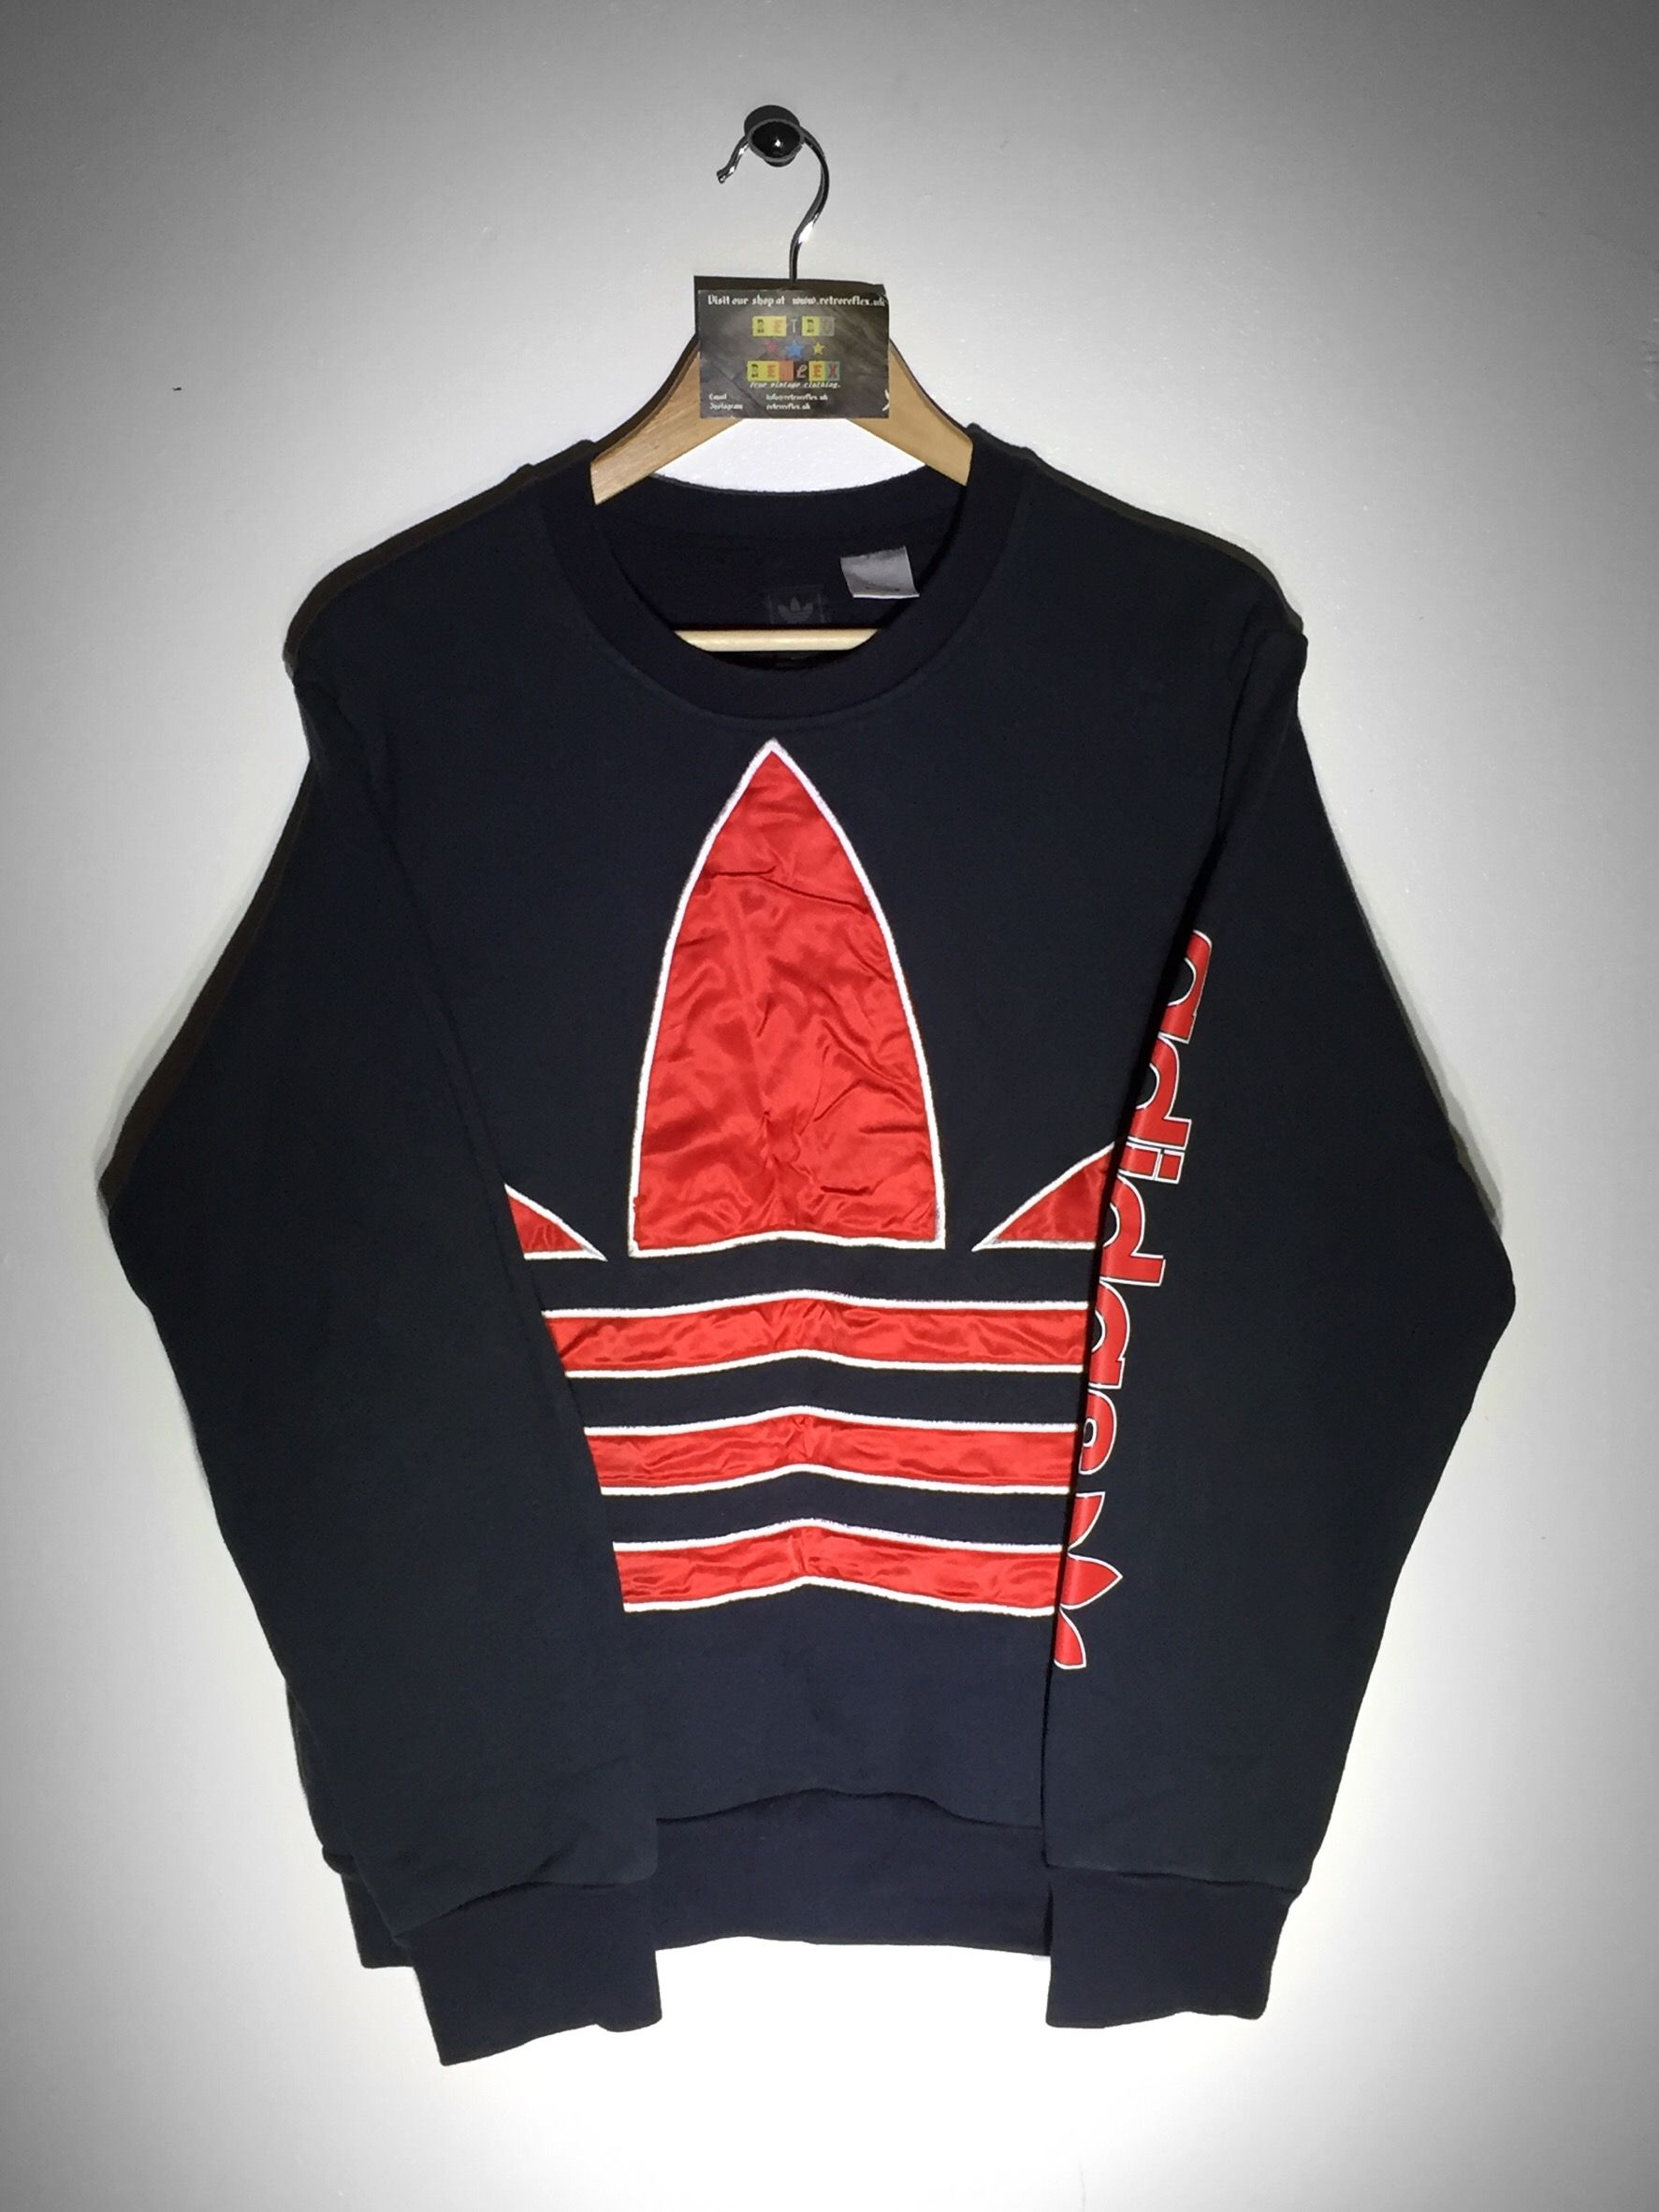 Vintage and Rare Pullover Zipper Hoodie ADIDAS TREFOIL Embroidery Small Logo Vintage Adidas Sport Clothing Size Medium BXAMWHME0